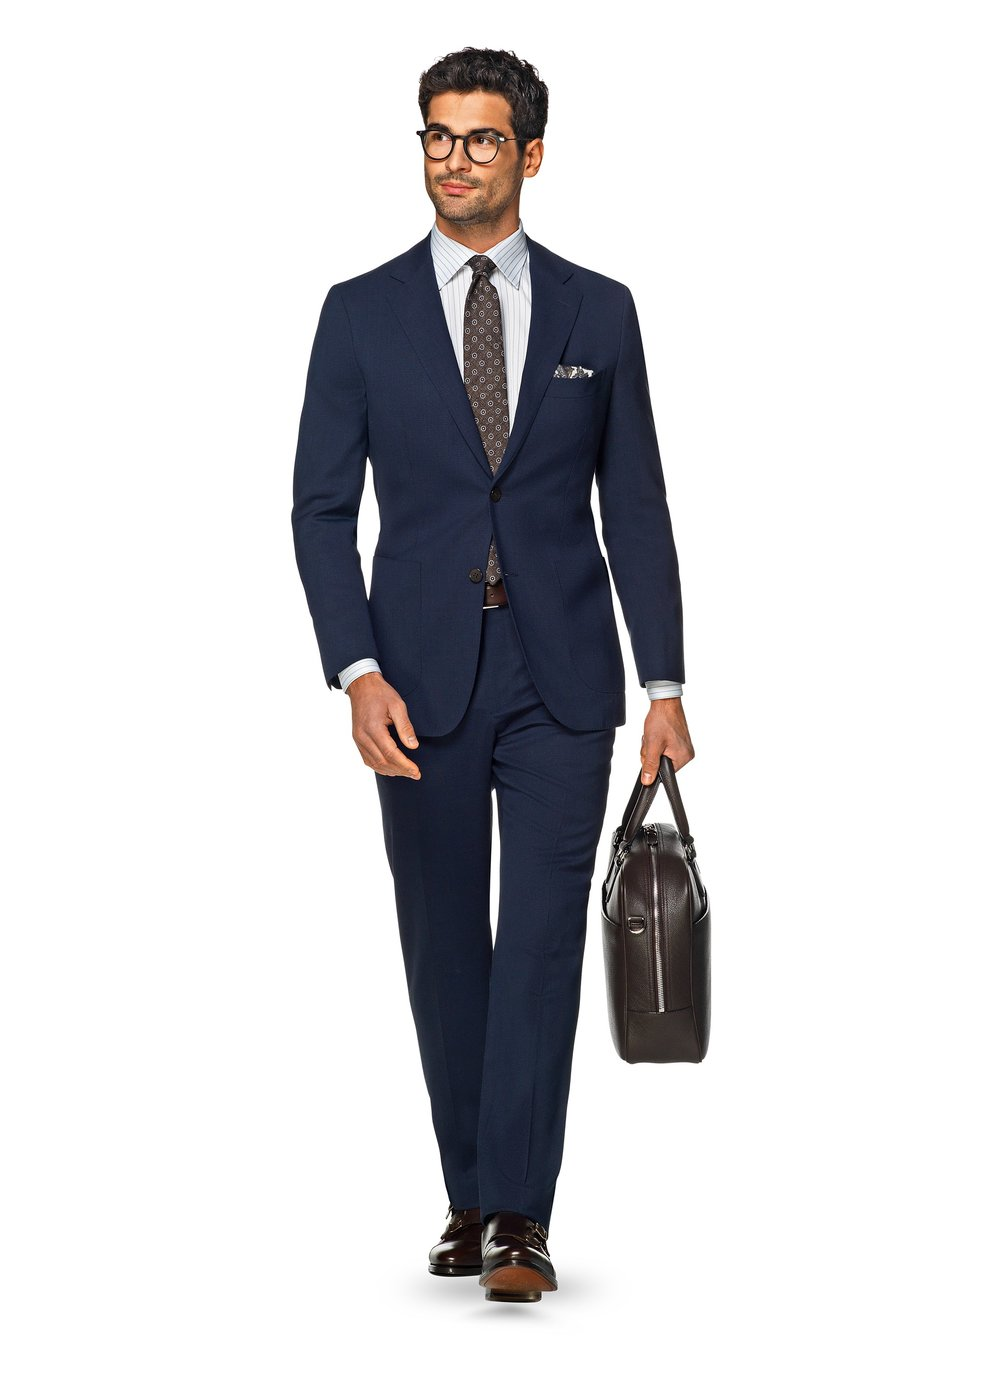 Suits_Blue_Check_Havana_P5111_Suitsupply_Online_Store_1.jpg